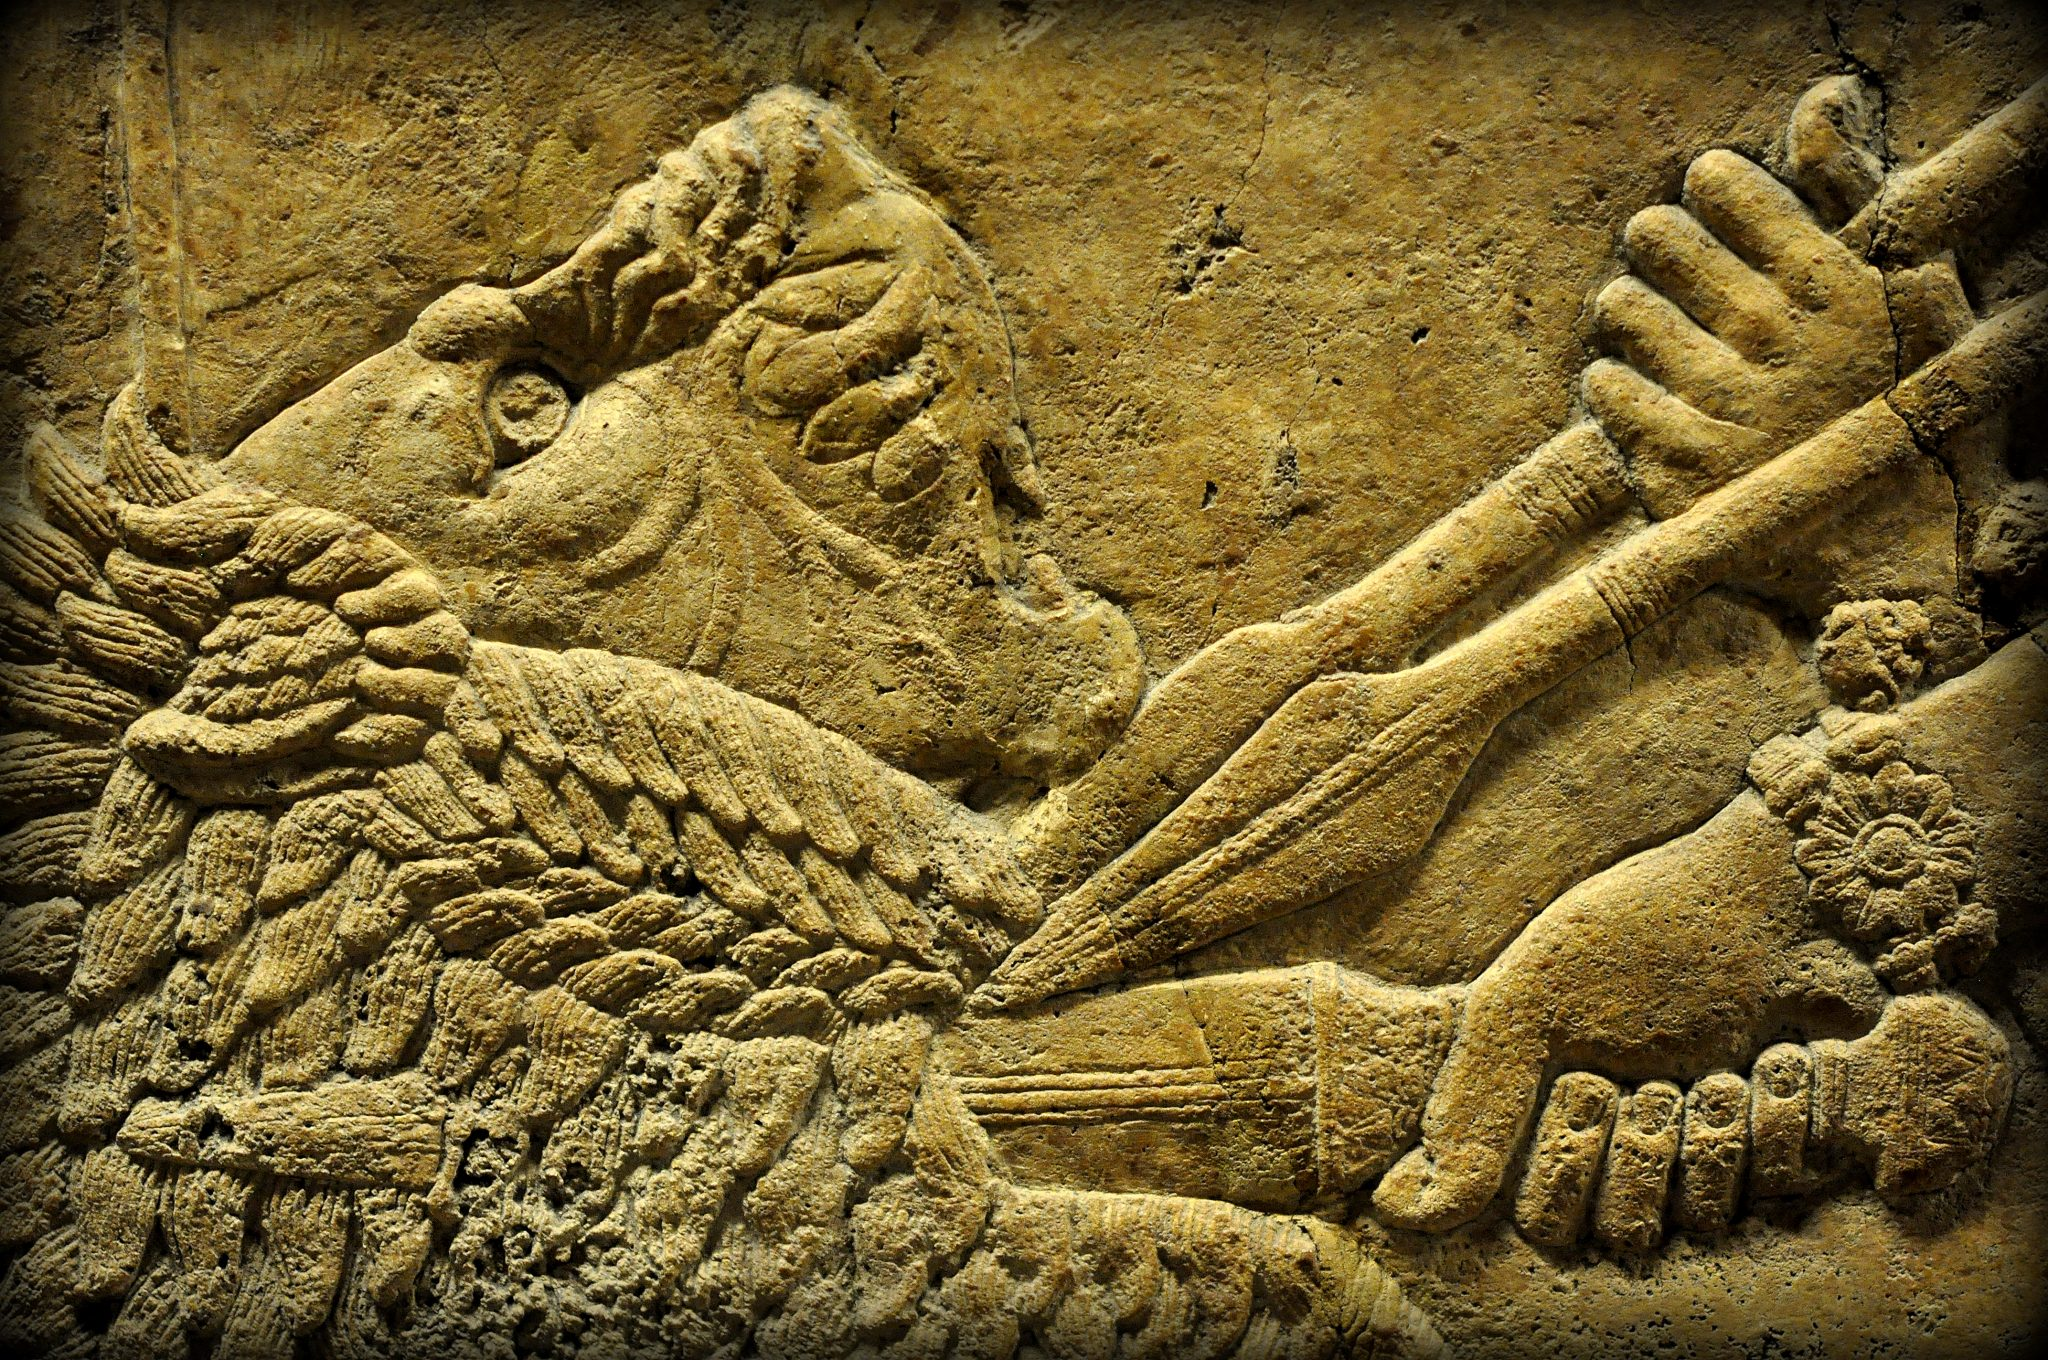 Detail of an alabaster bas-relief showing a lion being stabbed in the neck. The lion has jumped and reached a critical point very close to the king's chariot. The king's attendants thrust their spears onto the lion's neck to stop the lion; the king, using his right hand, stabs the lion deeply into his neck. The lion's painful facial expression was  depicted very delicately. From Room C of the North Palace, Nineveh (modern-day Kouyunjik, Mosul Governorate), Mesopotamia, Iraq. Circa 645-535 BCE. The British Museum, London. Photo©Osama S.M. Amin.